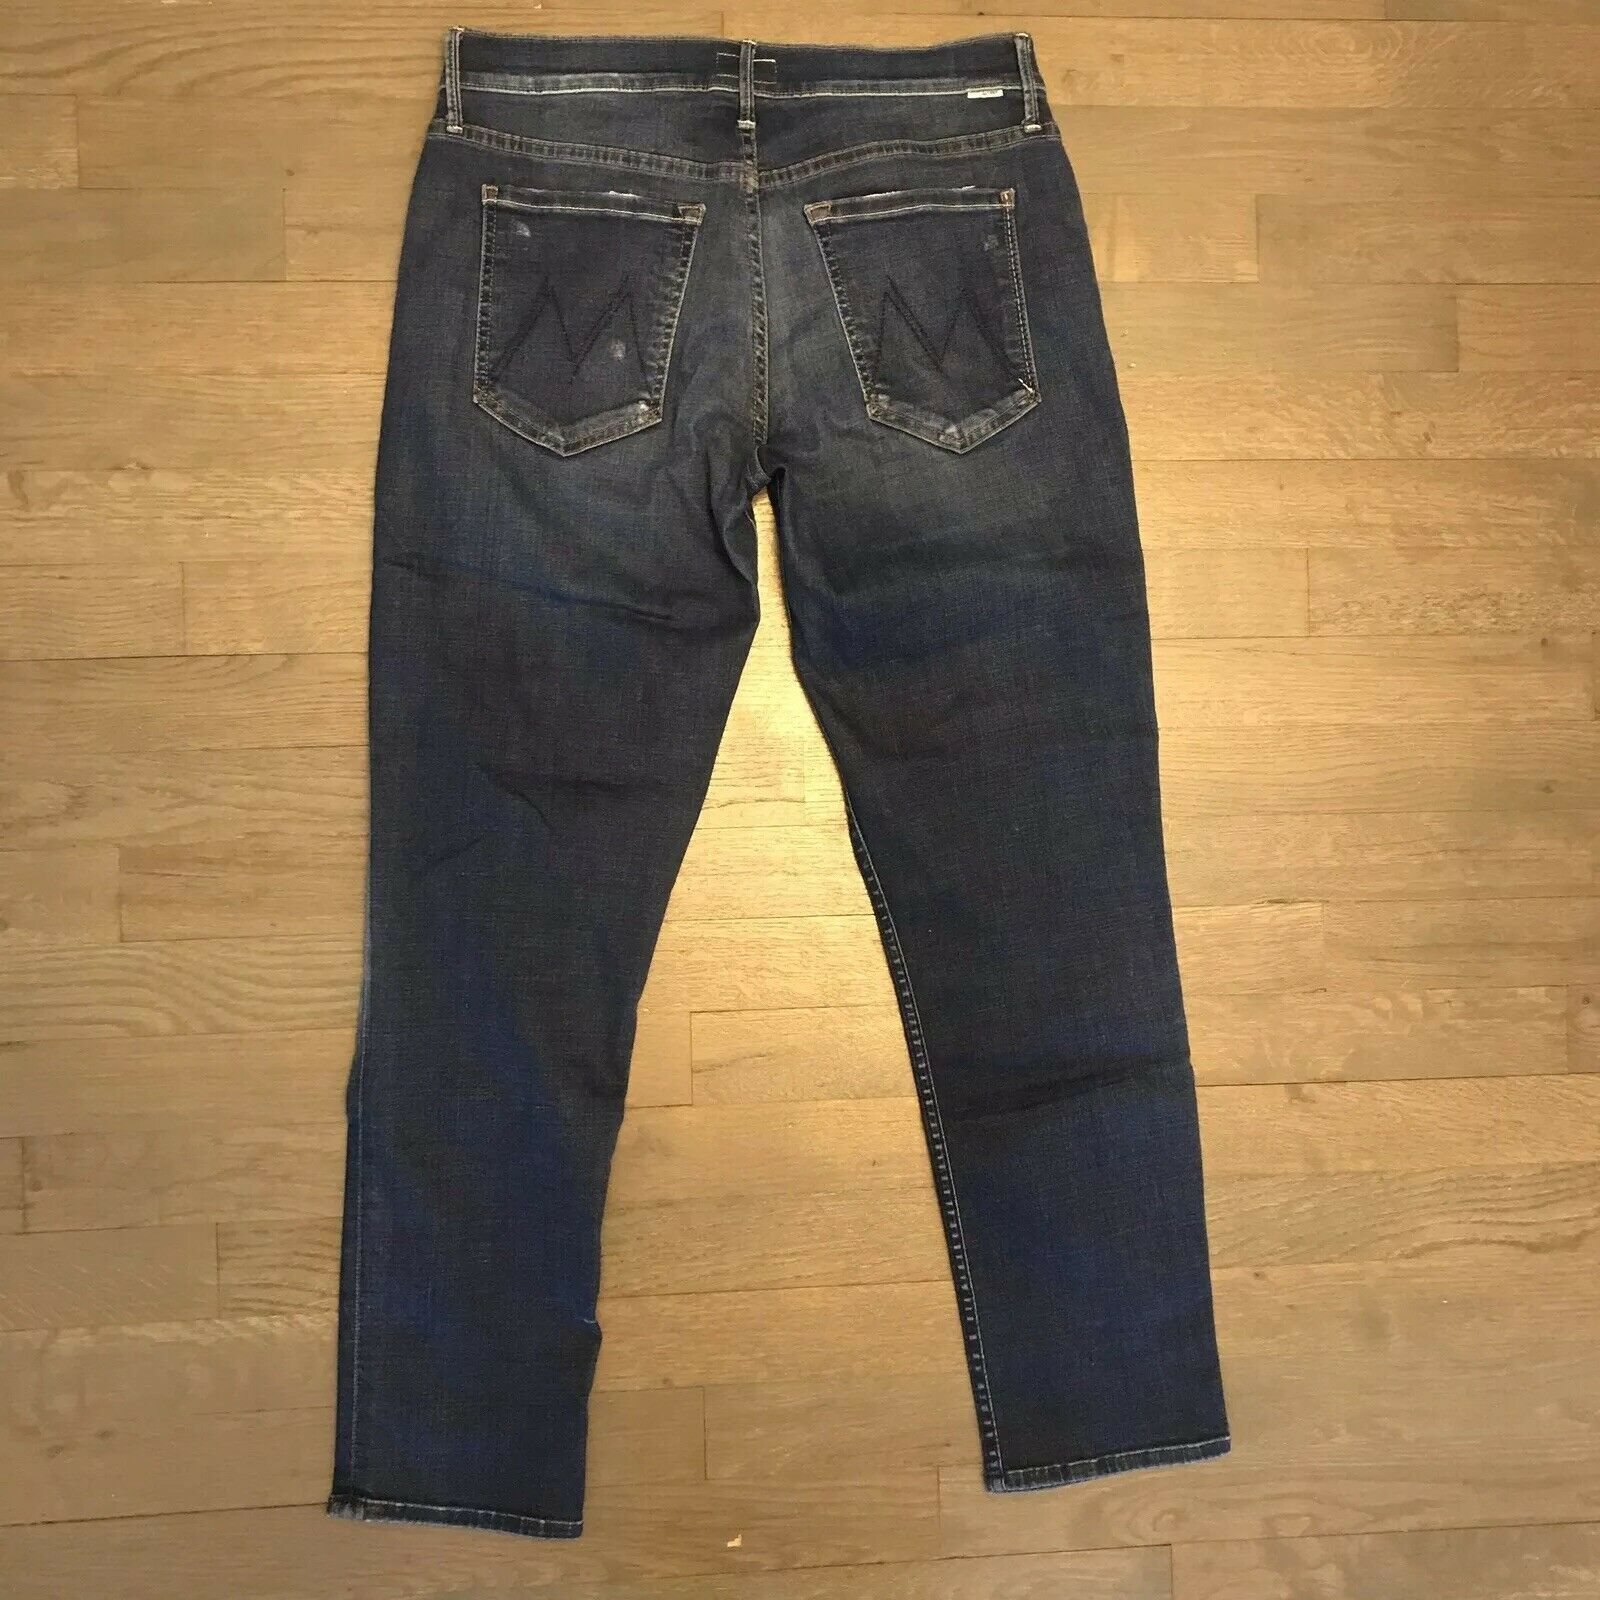 24260c7a Mother The Dropout Smoke And Mirrors Stretch Denim Jeans Woman's Size 26